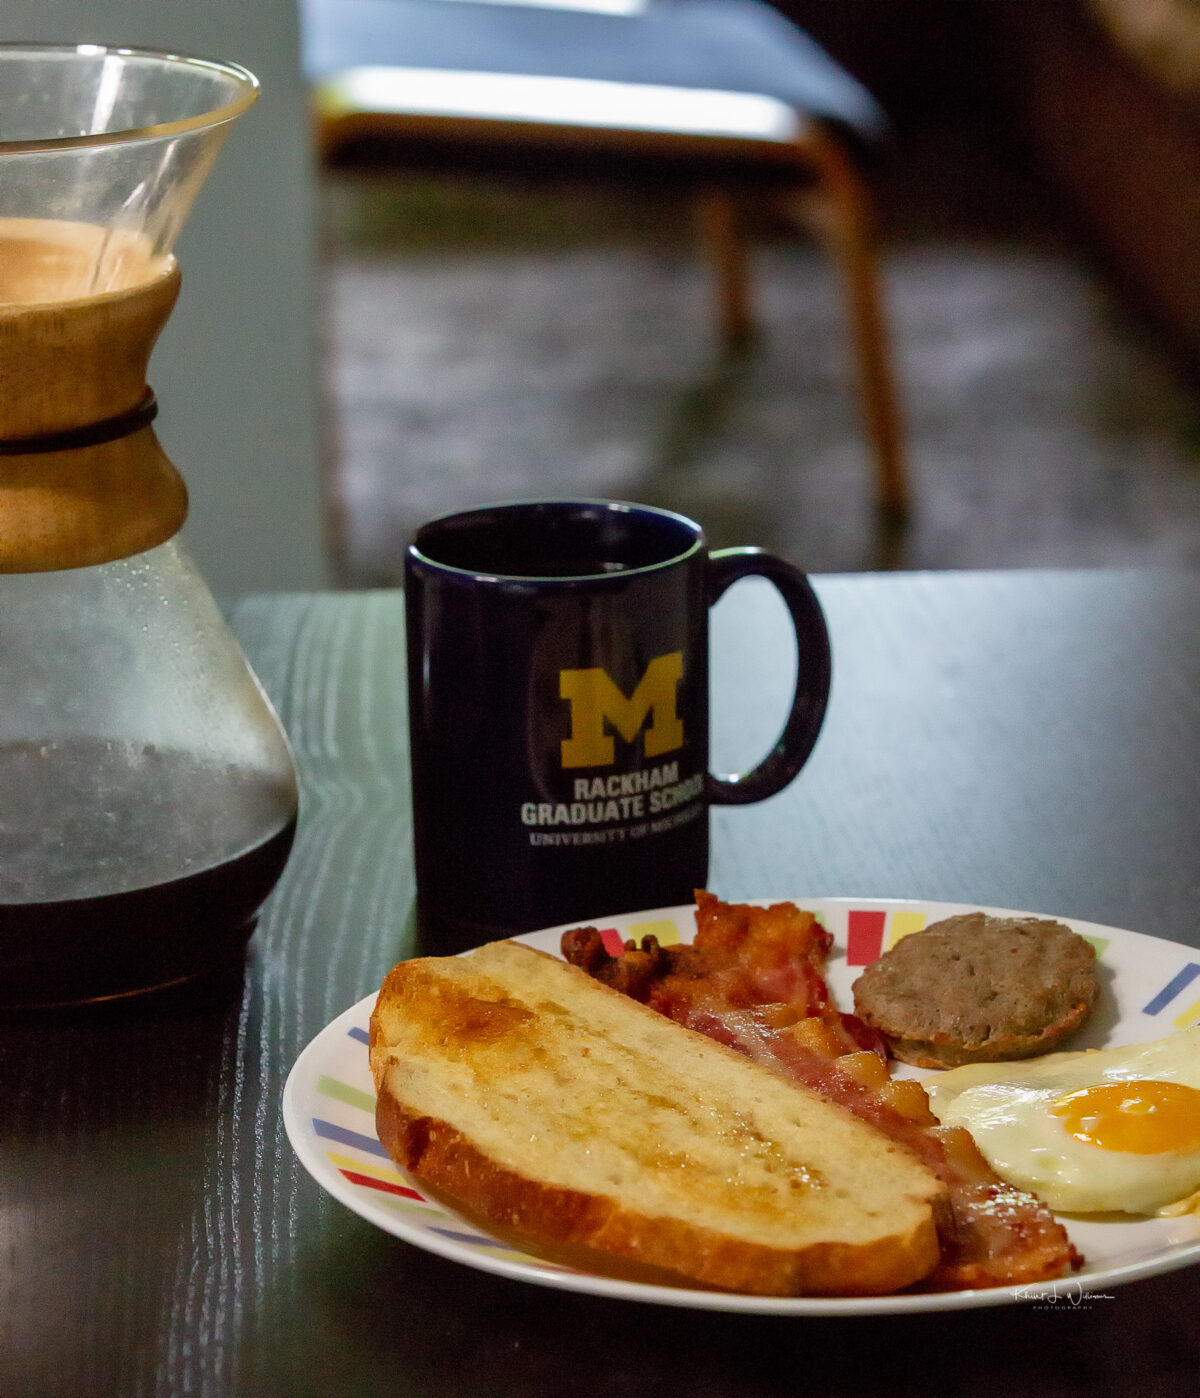 Oven backed bacon, oven fried egg, turkey sausage patty, semolina toast with drizzled honey, and fresh coffee brewed in the Chemex